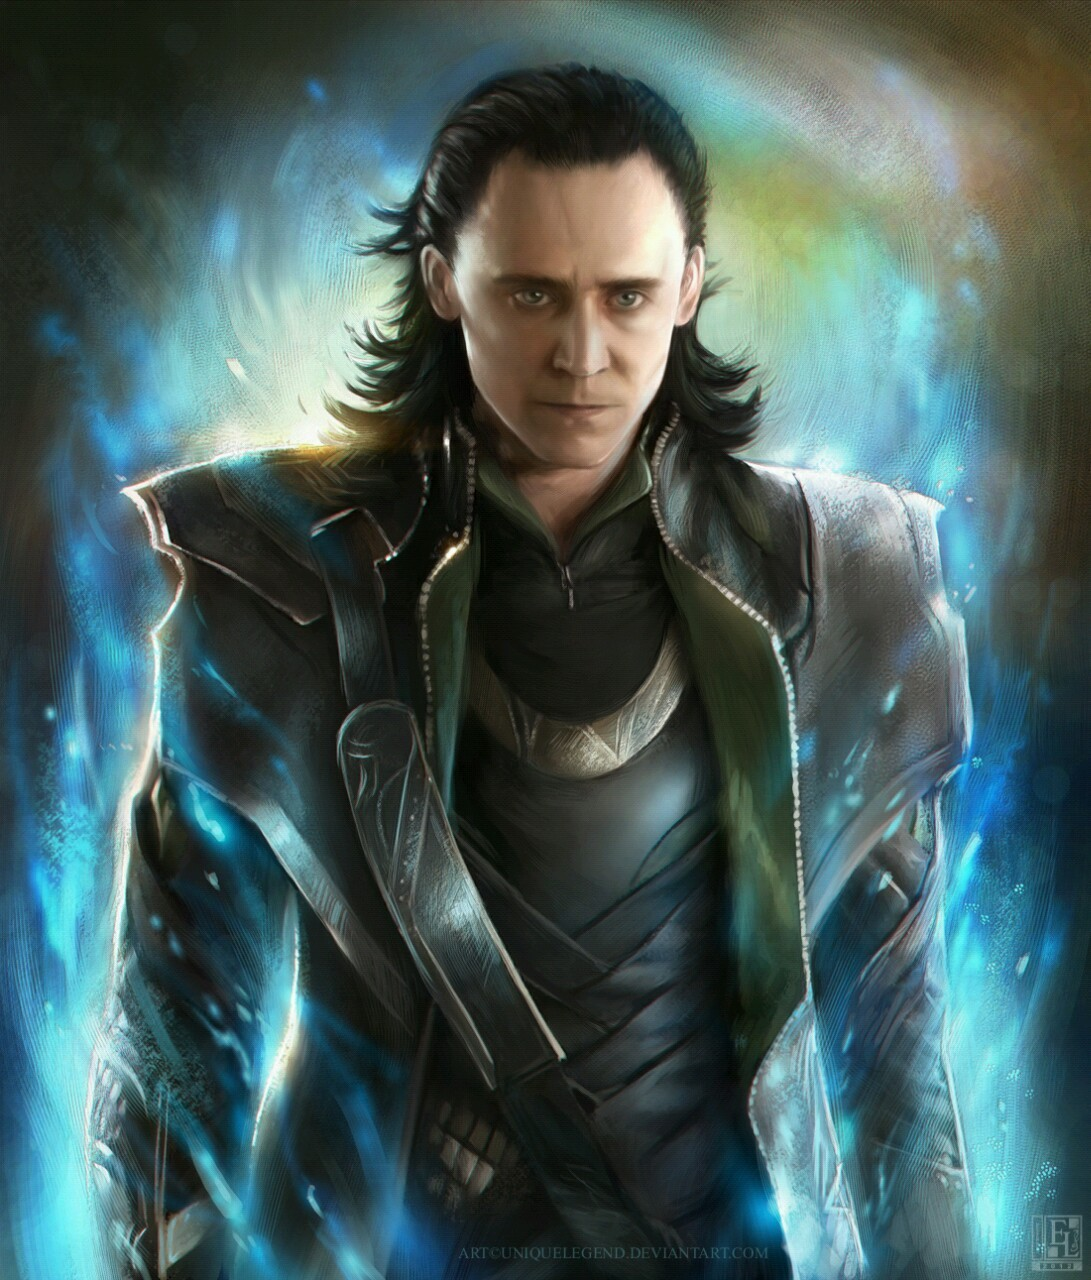 I am Loki, of Asgard and I am burdened with glorious purpose.